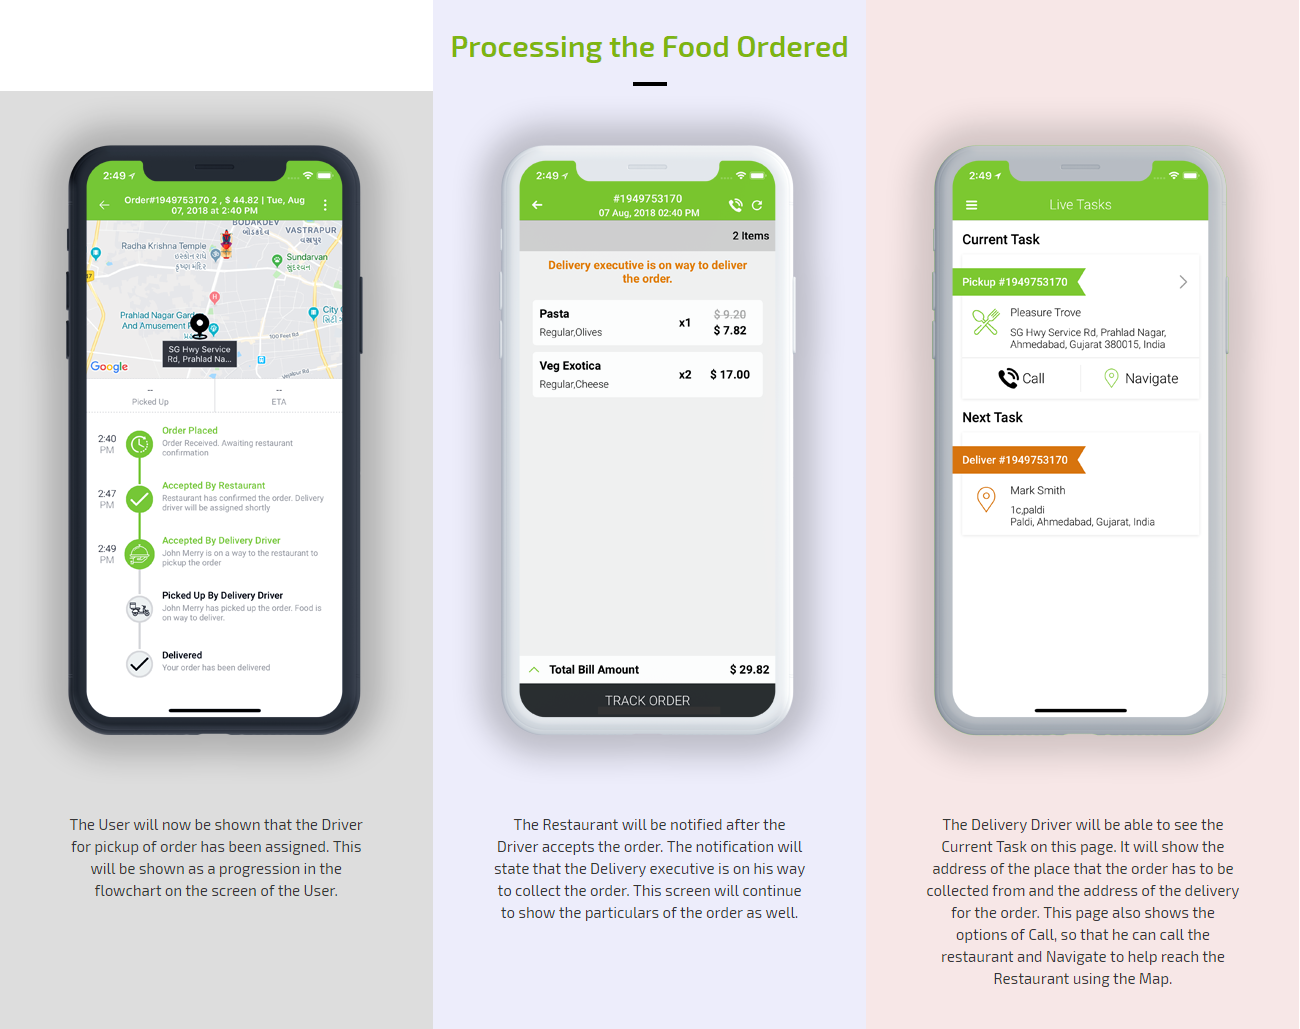 food order processing